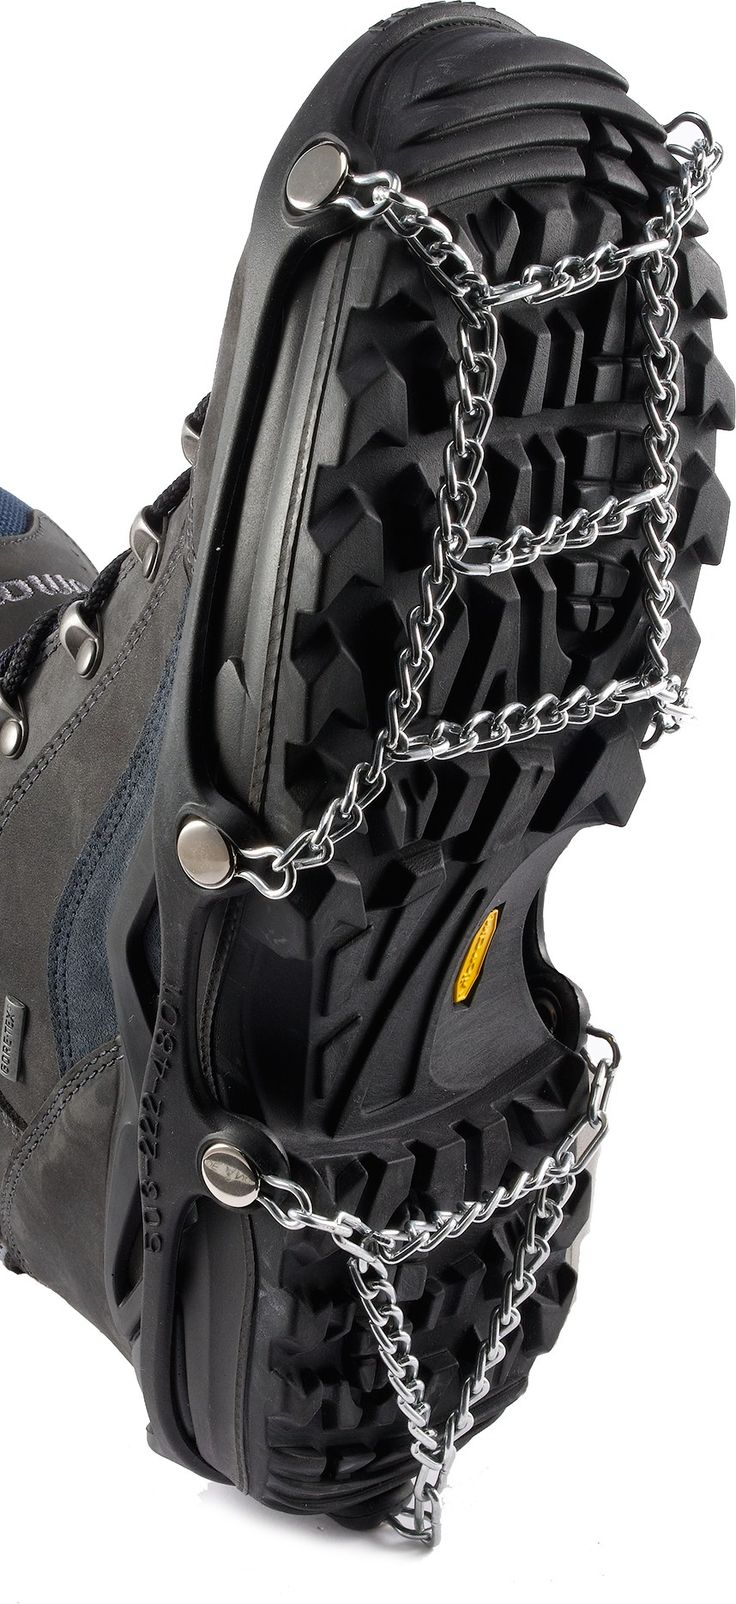 Kako ICEtrekkers Chains Traction System